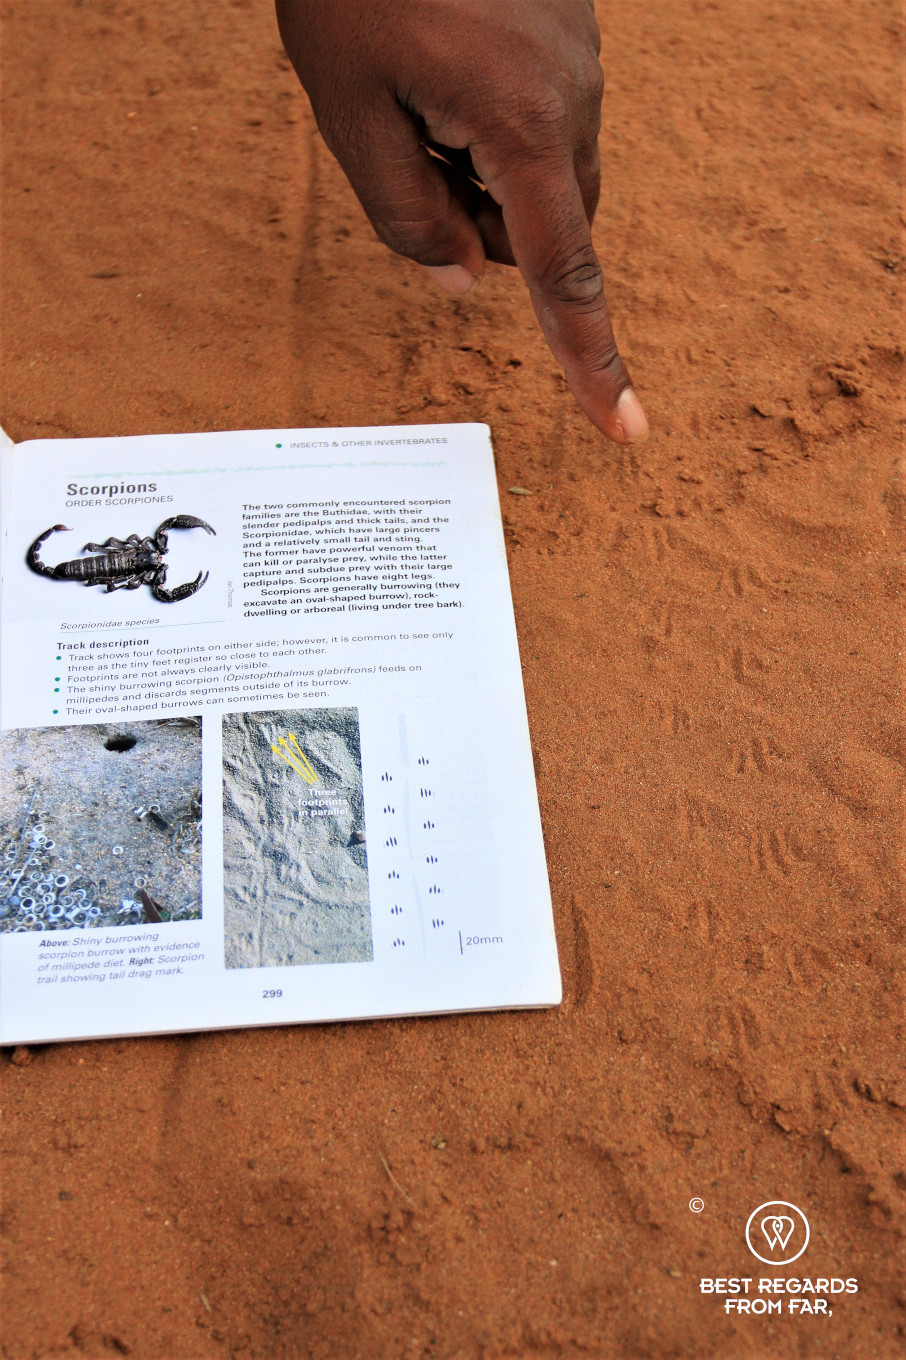 Instructor Norman Chauke's hand pointing at a scorpion track in red sand